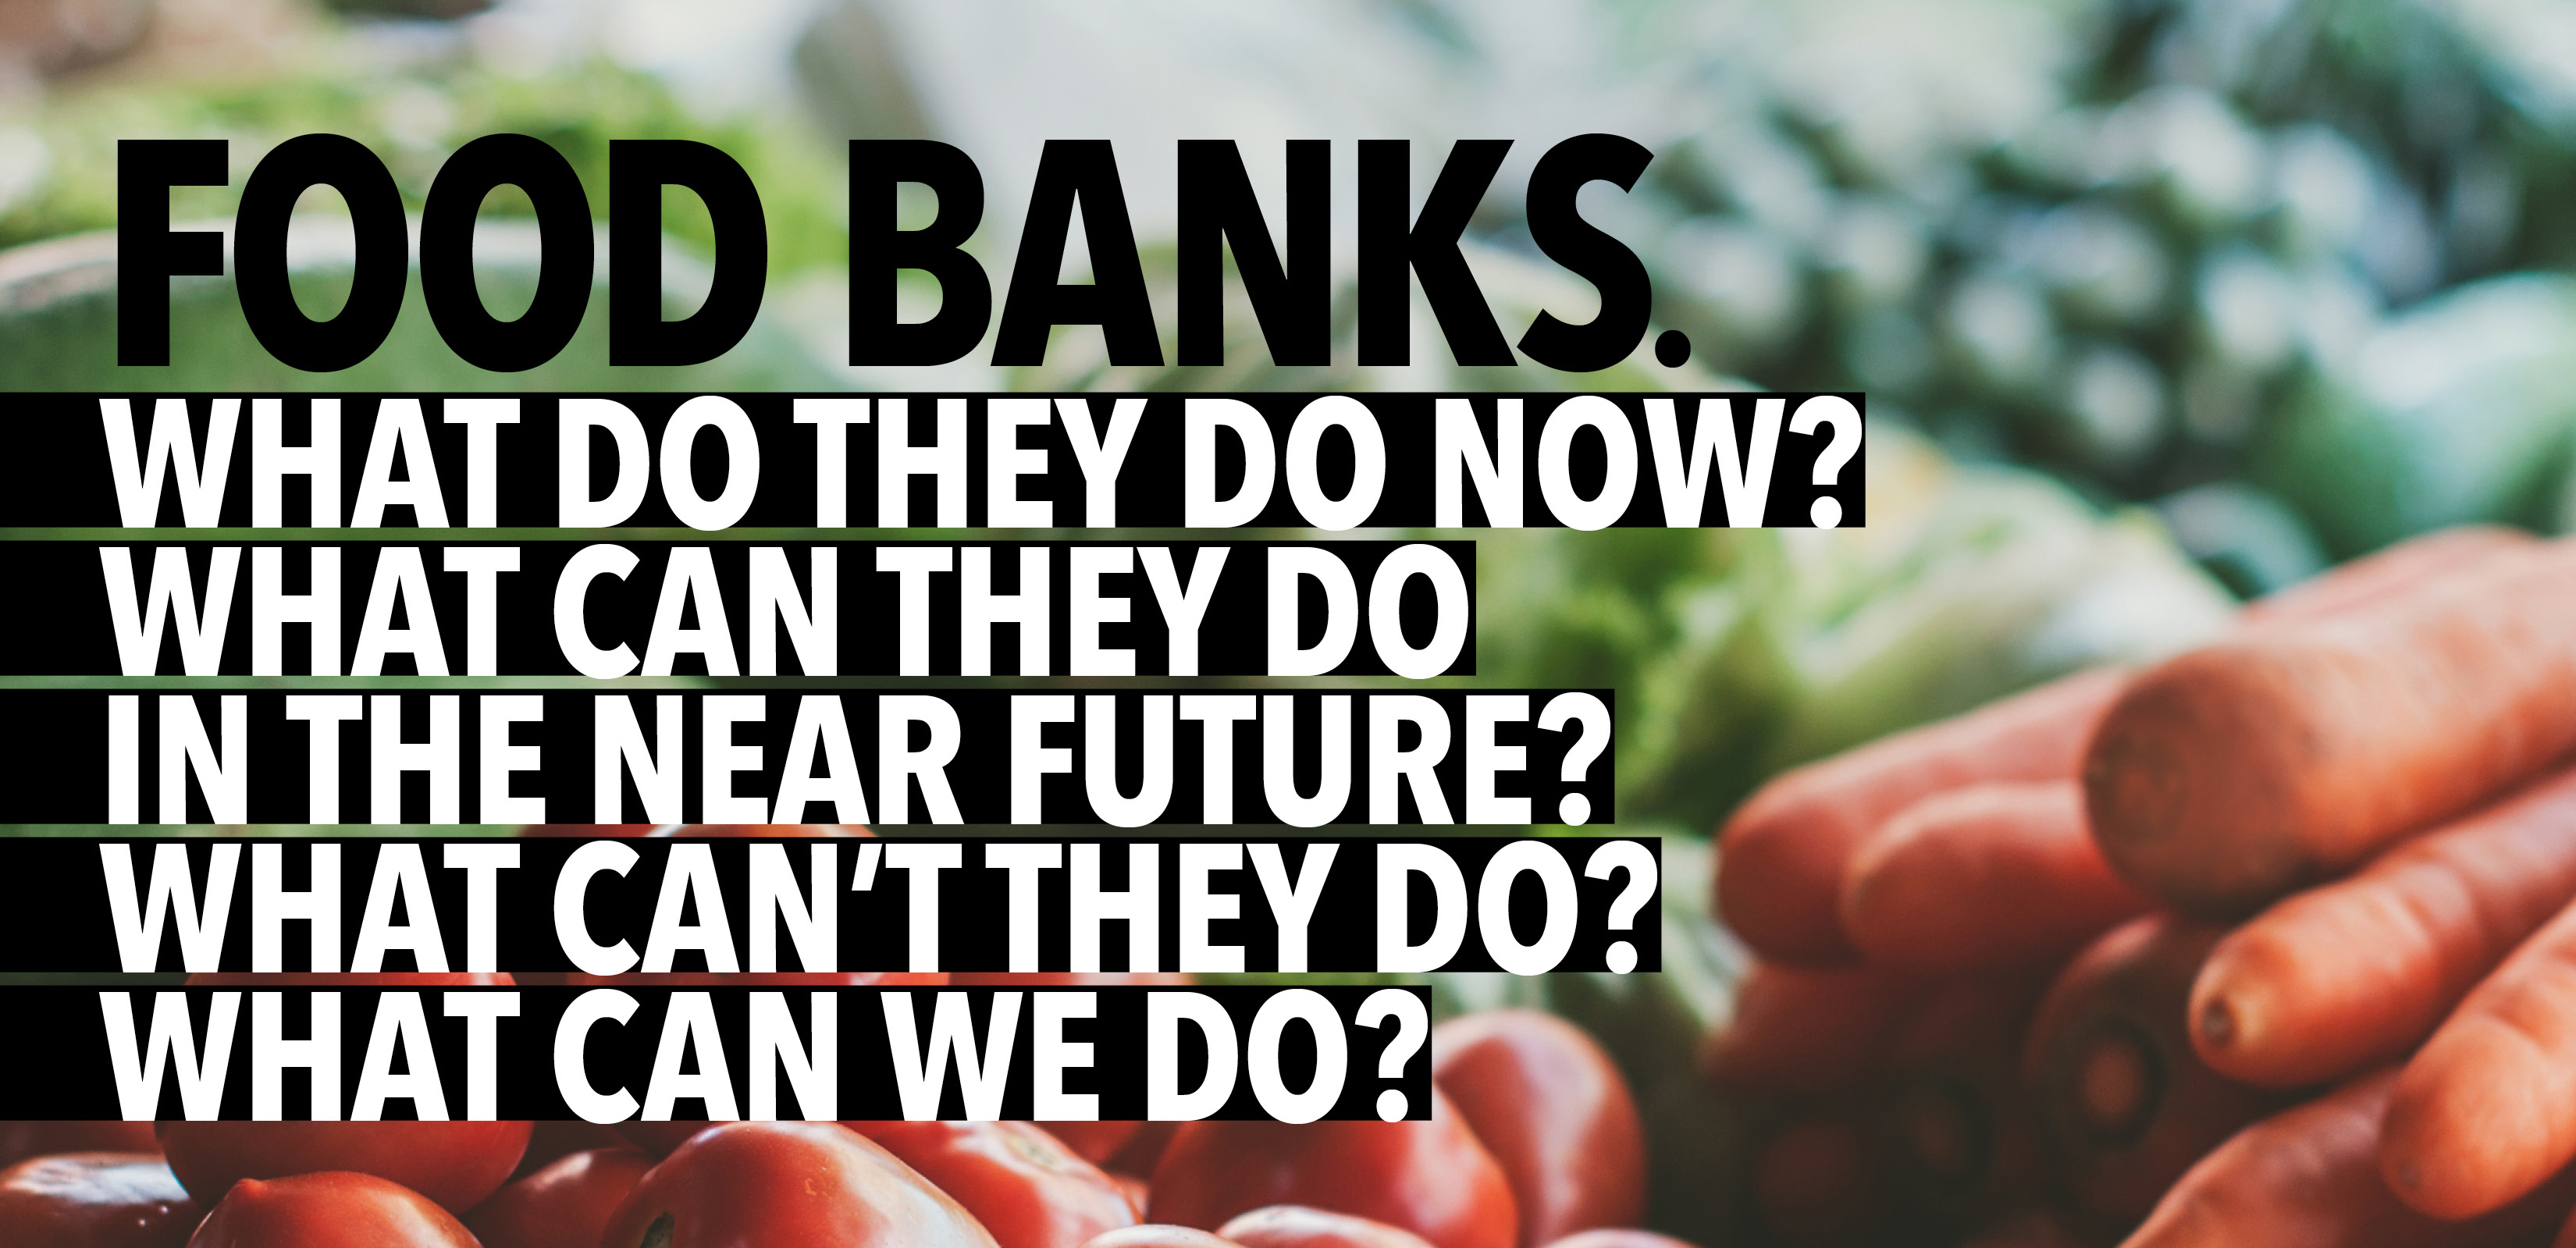 Banner: Food Banks. What do they do now? What can they do in the near future? What can't they do? What can we do?